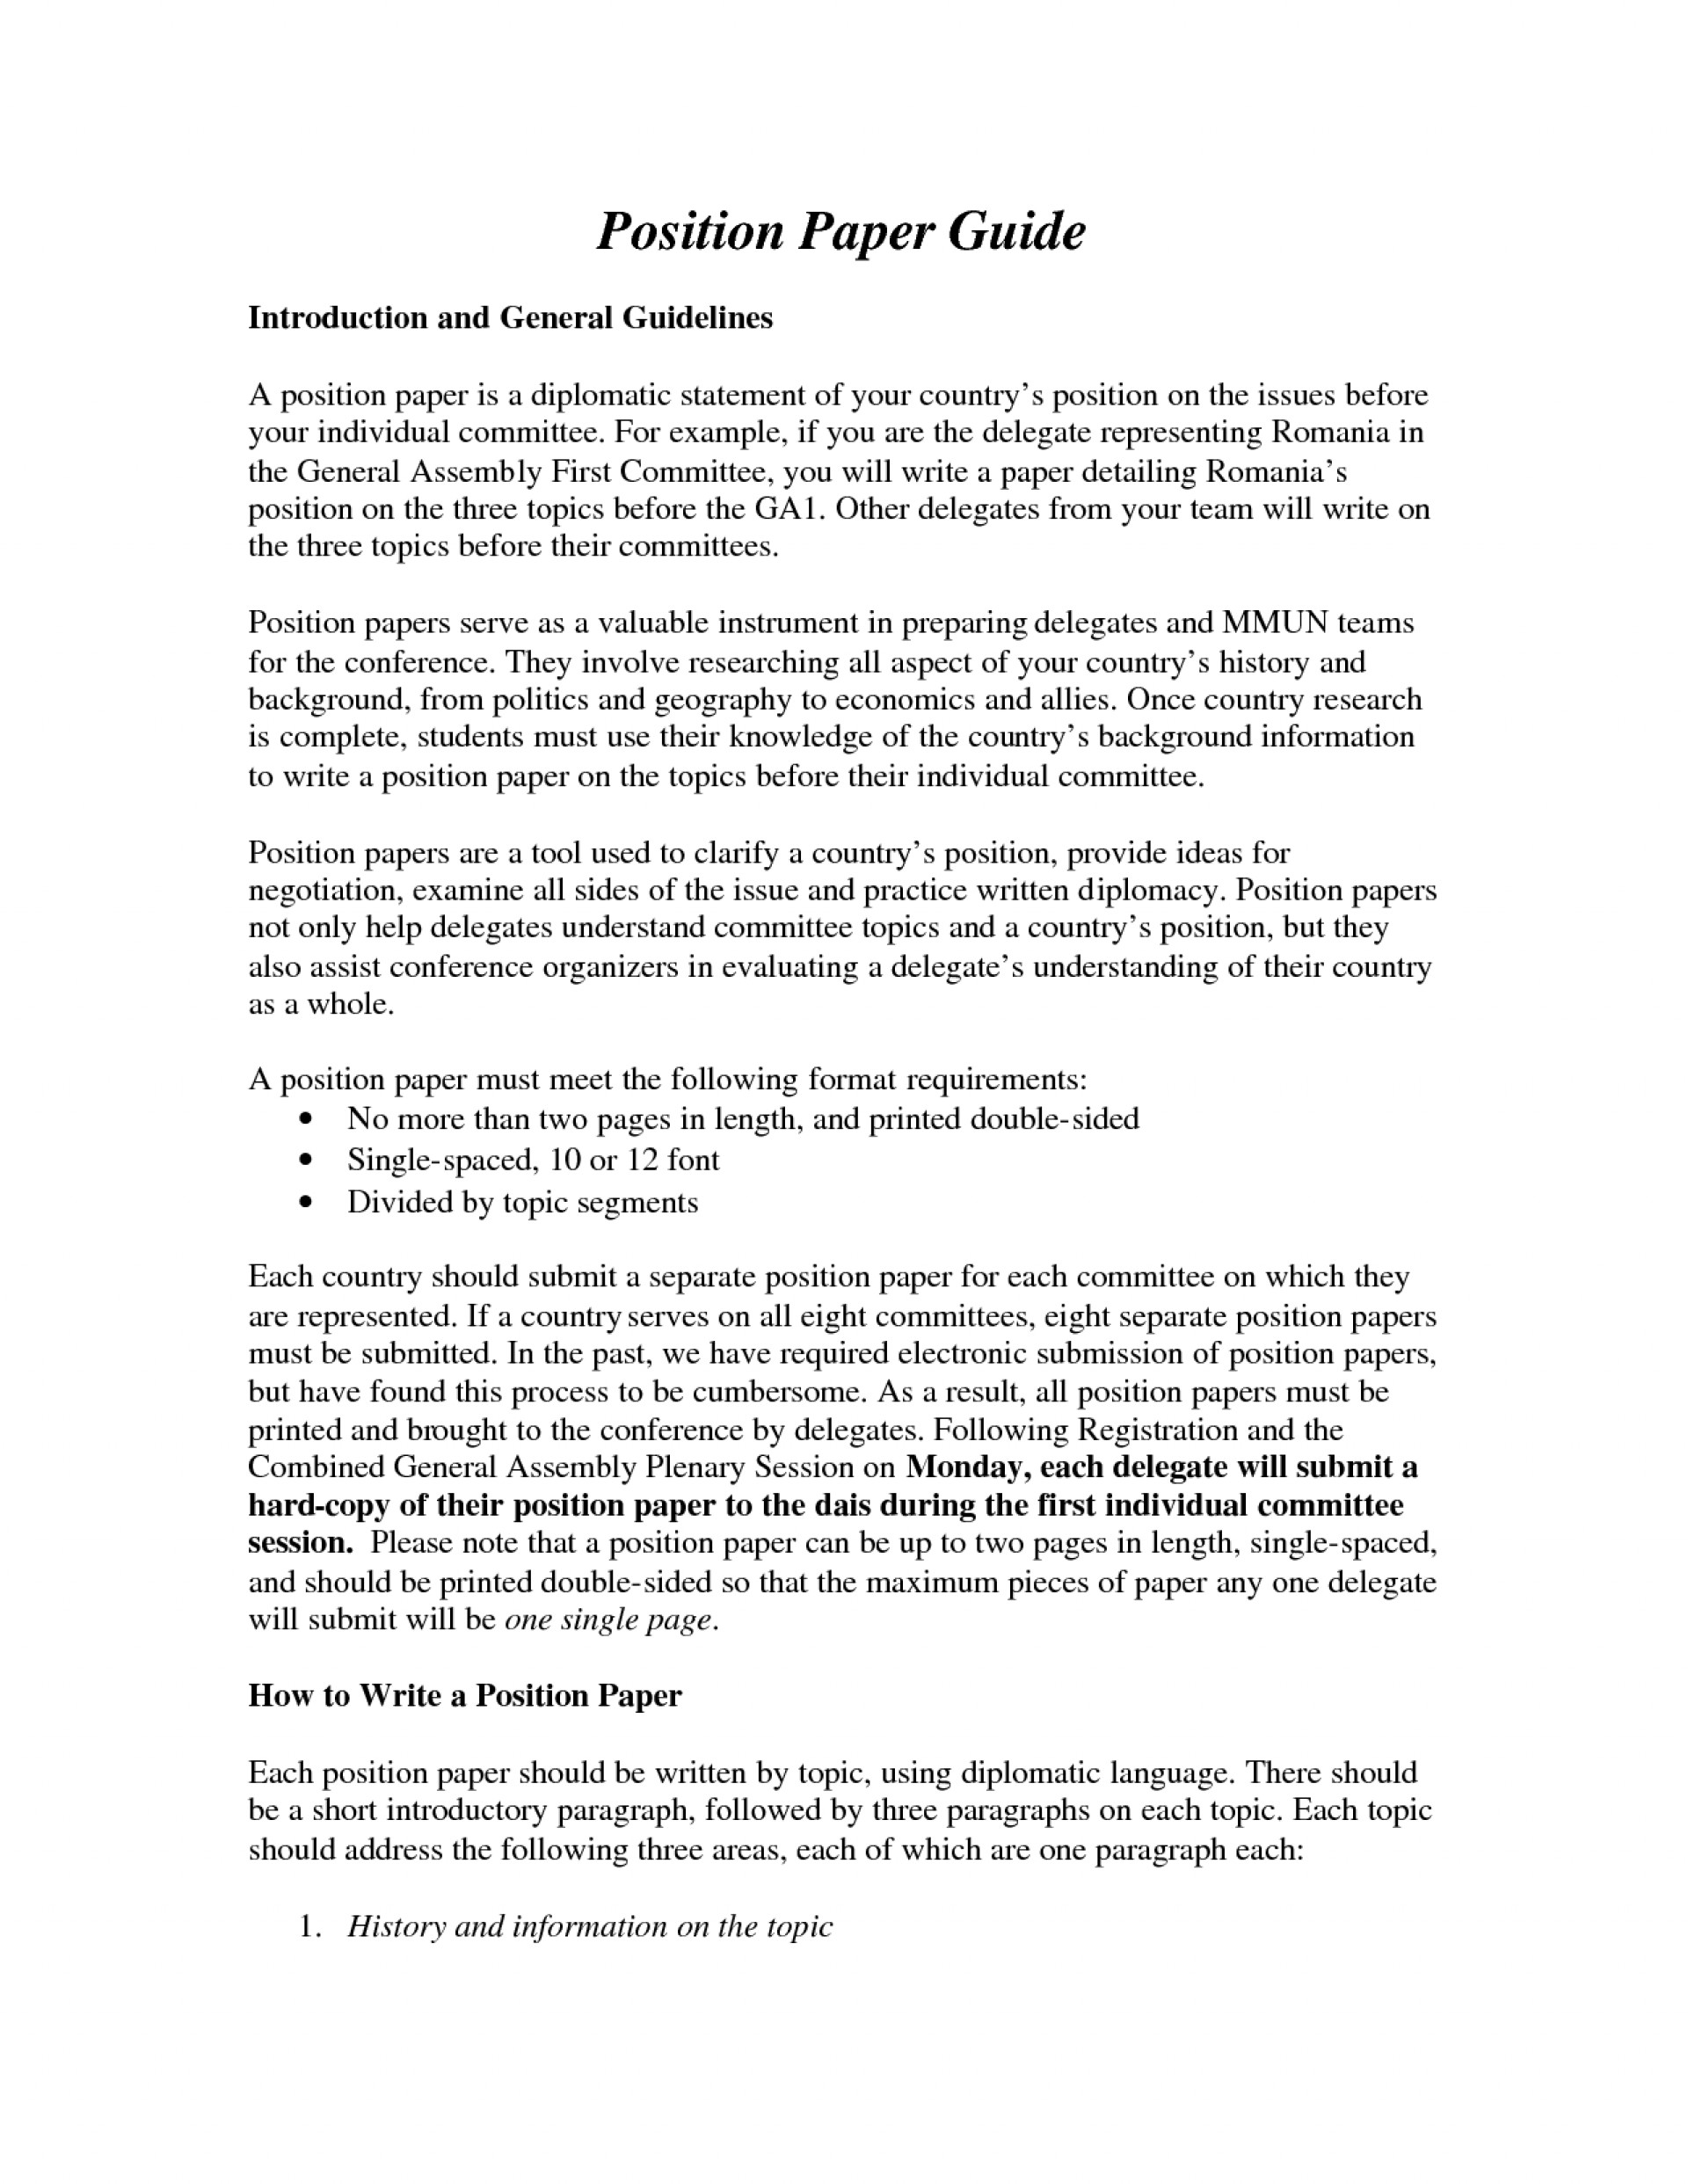 003 Research Paper Proposal Example 501383 Of Proposals For Incredible Papers Sample Pdf Writing Examples Topic 1920